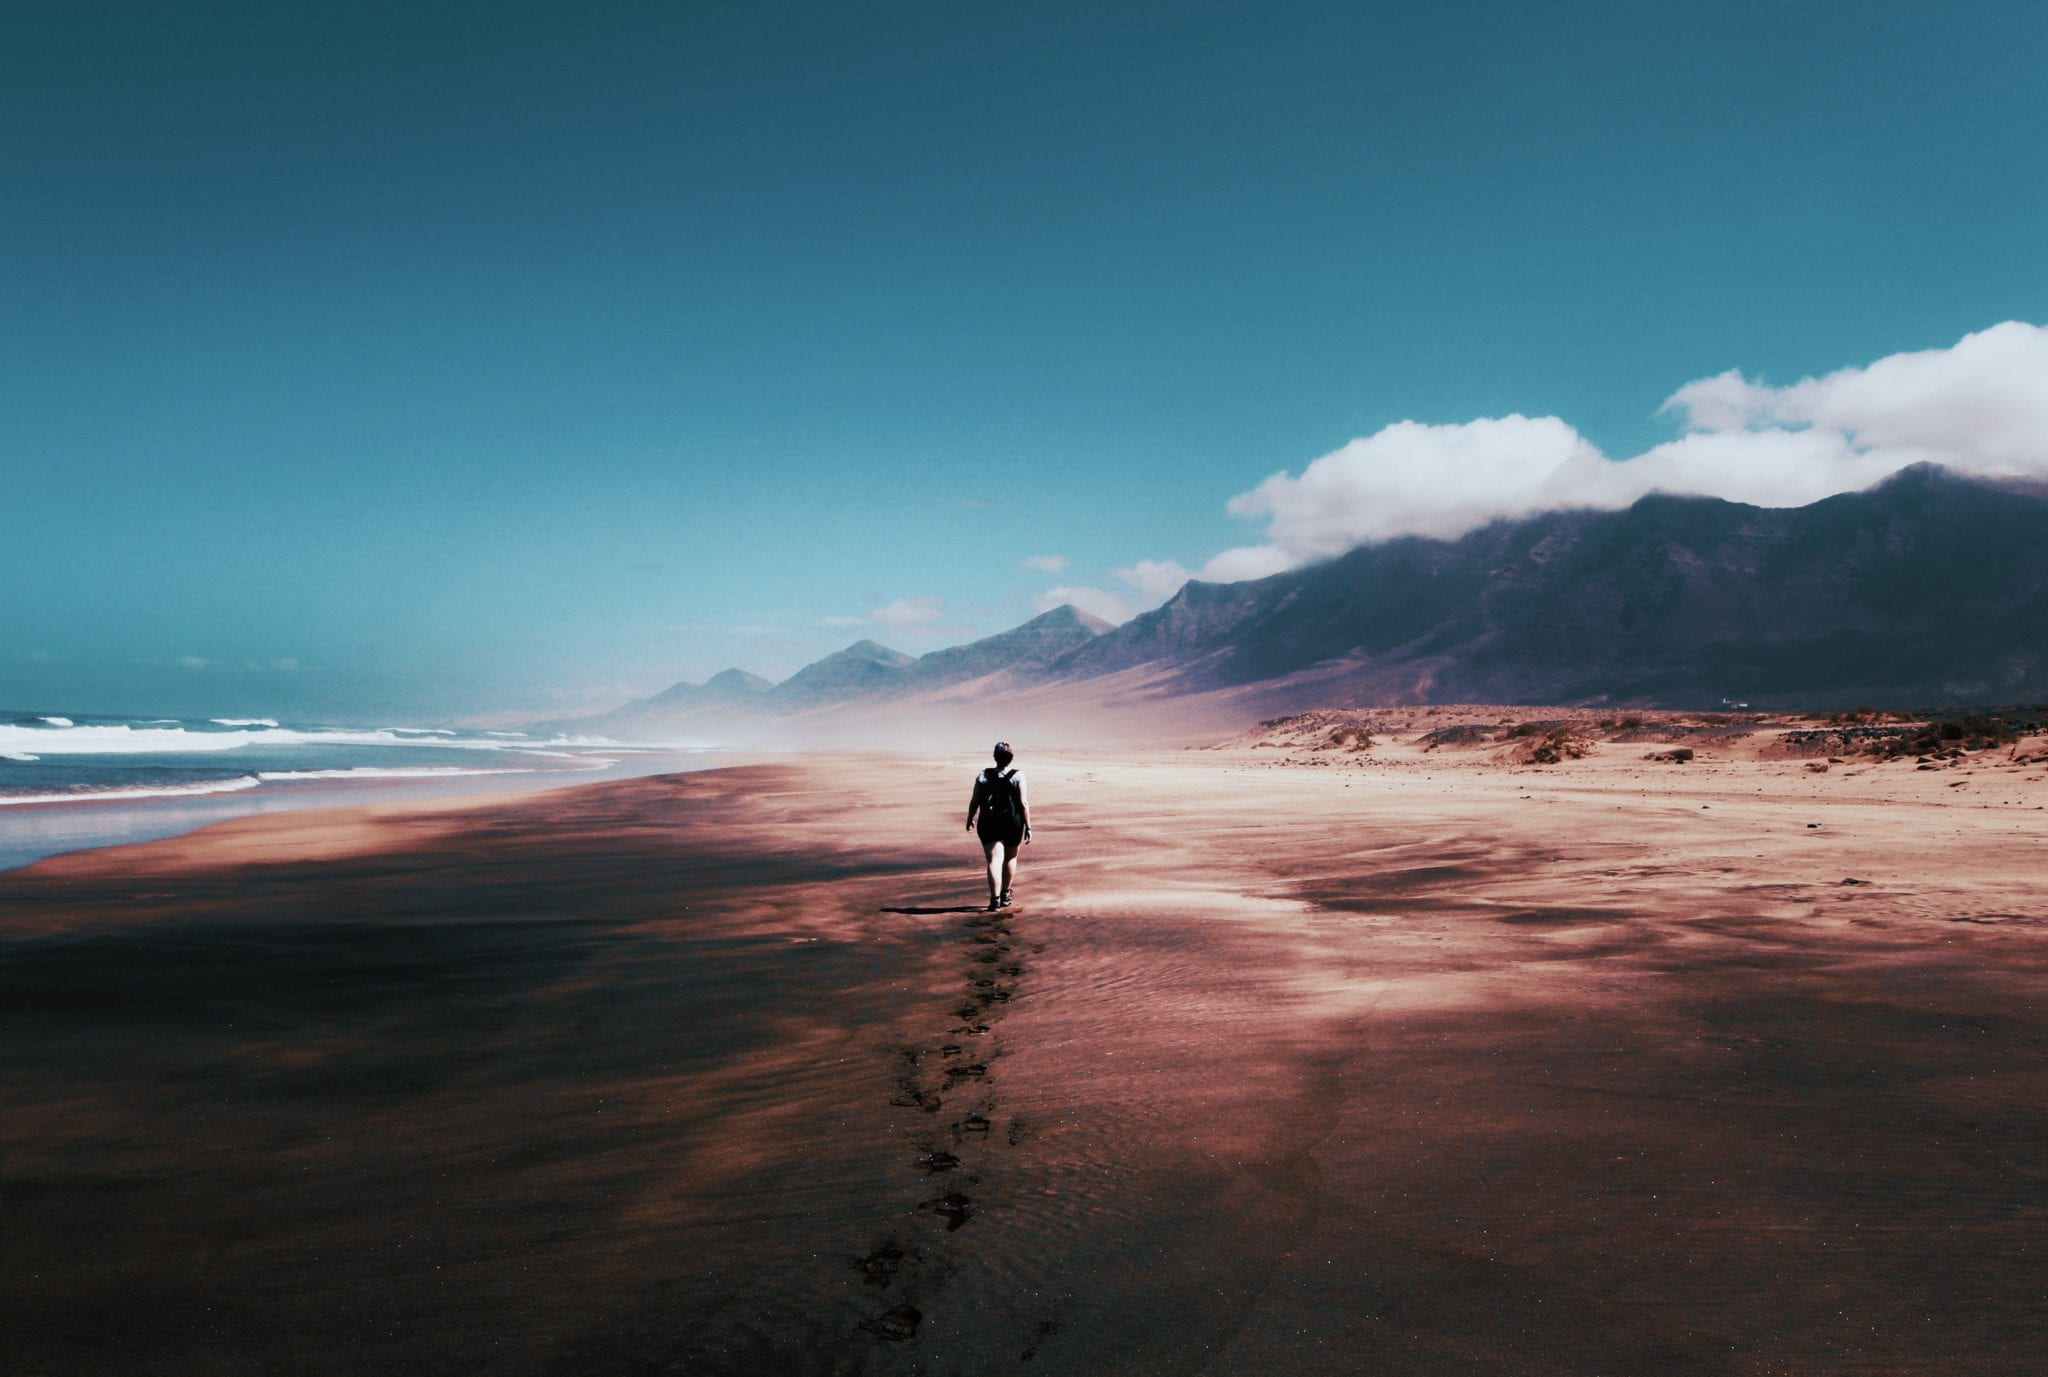 What the Bible says about wandering